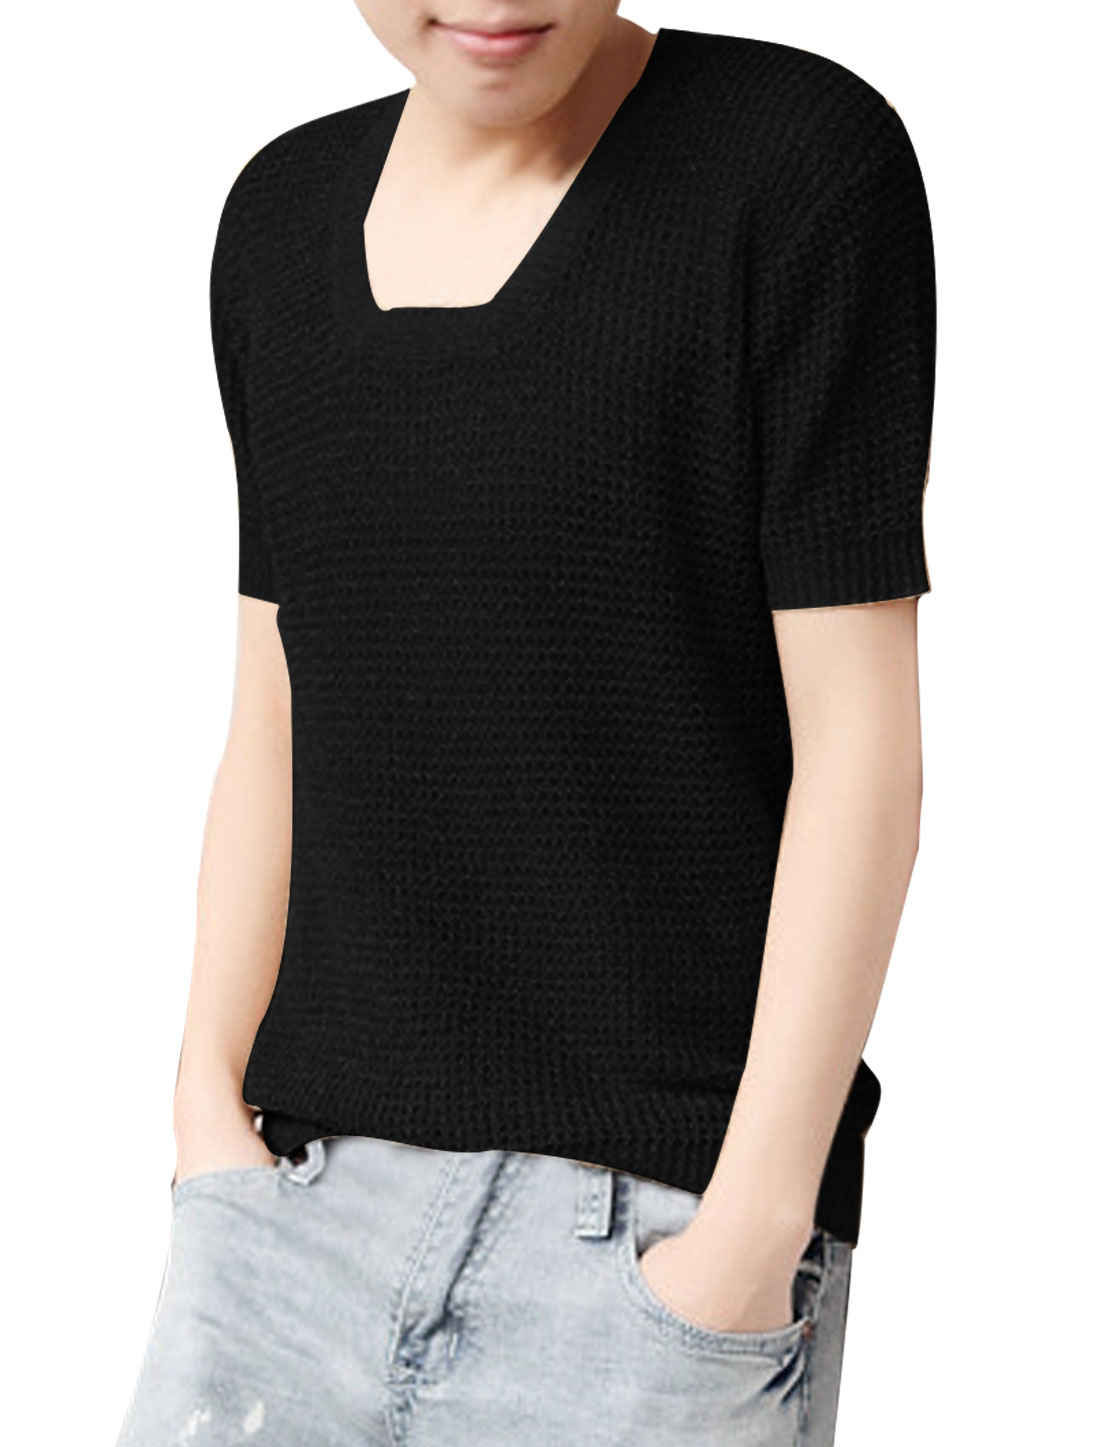 Man New Fashion Square Neck Short Sleeved Pure Black Knitted Tops M